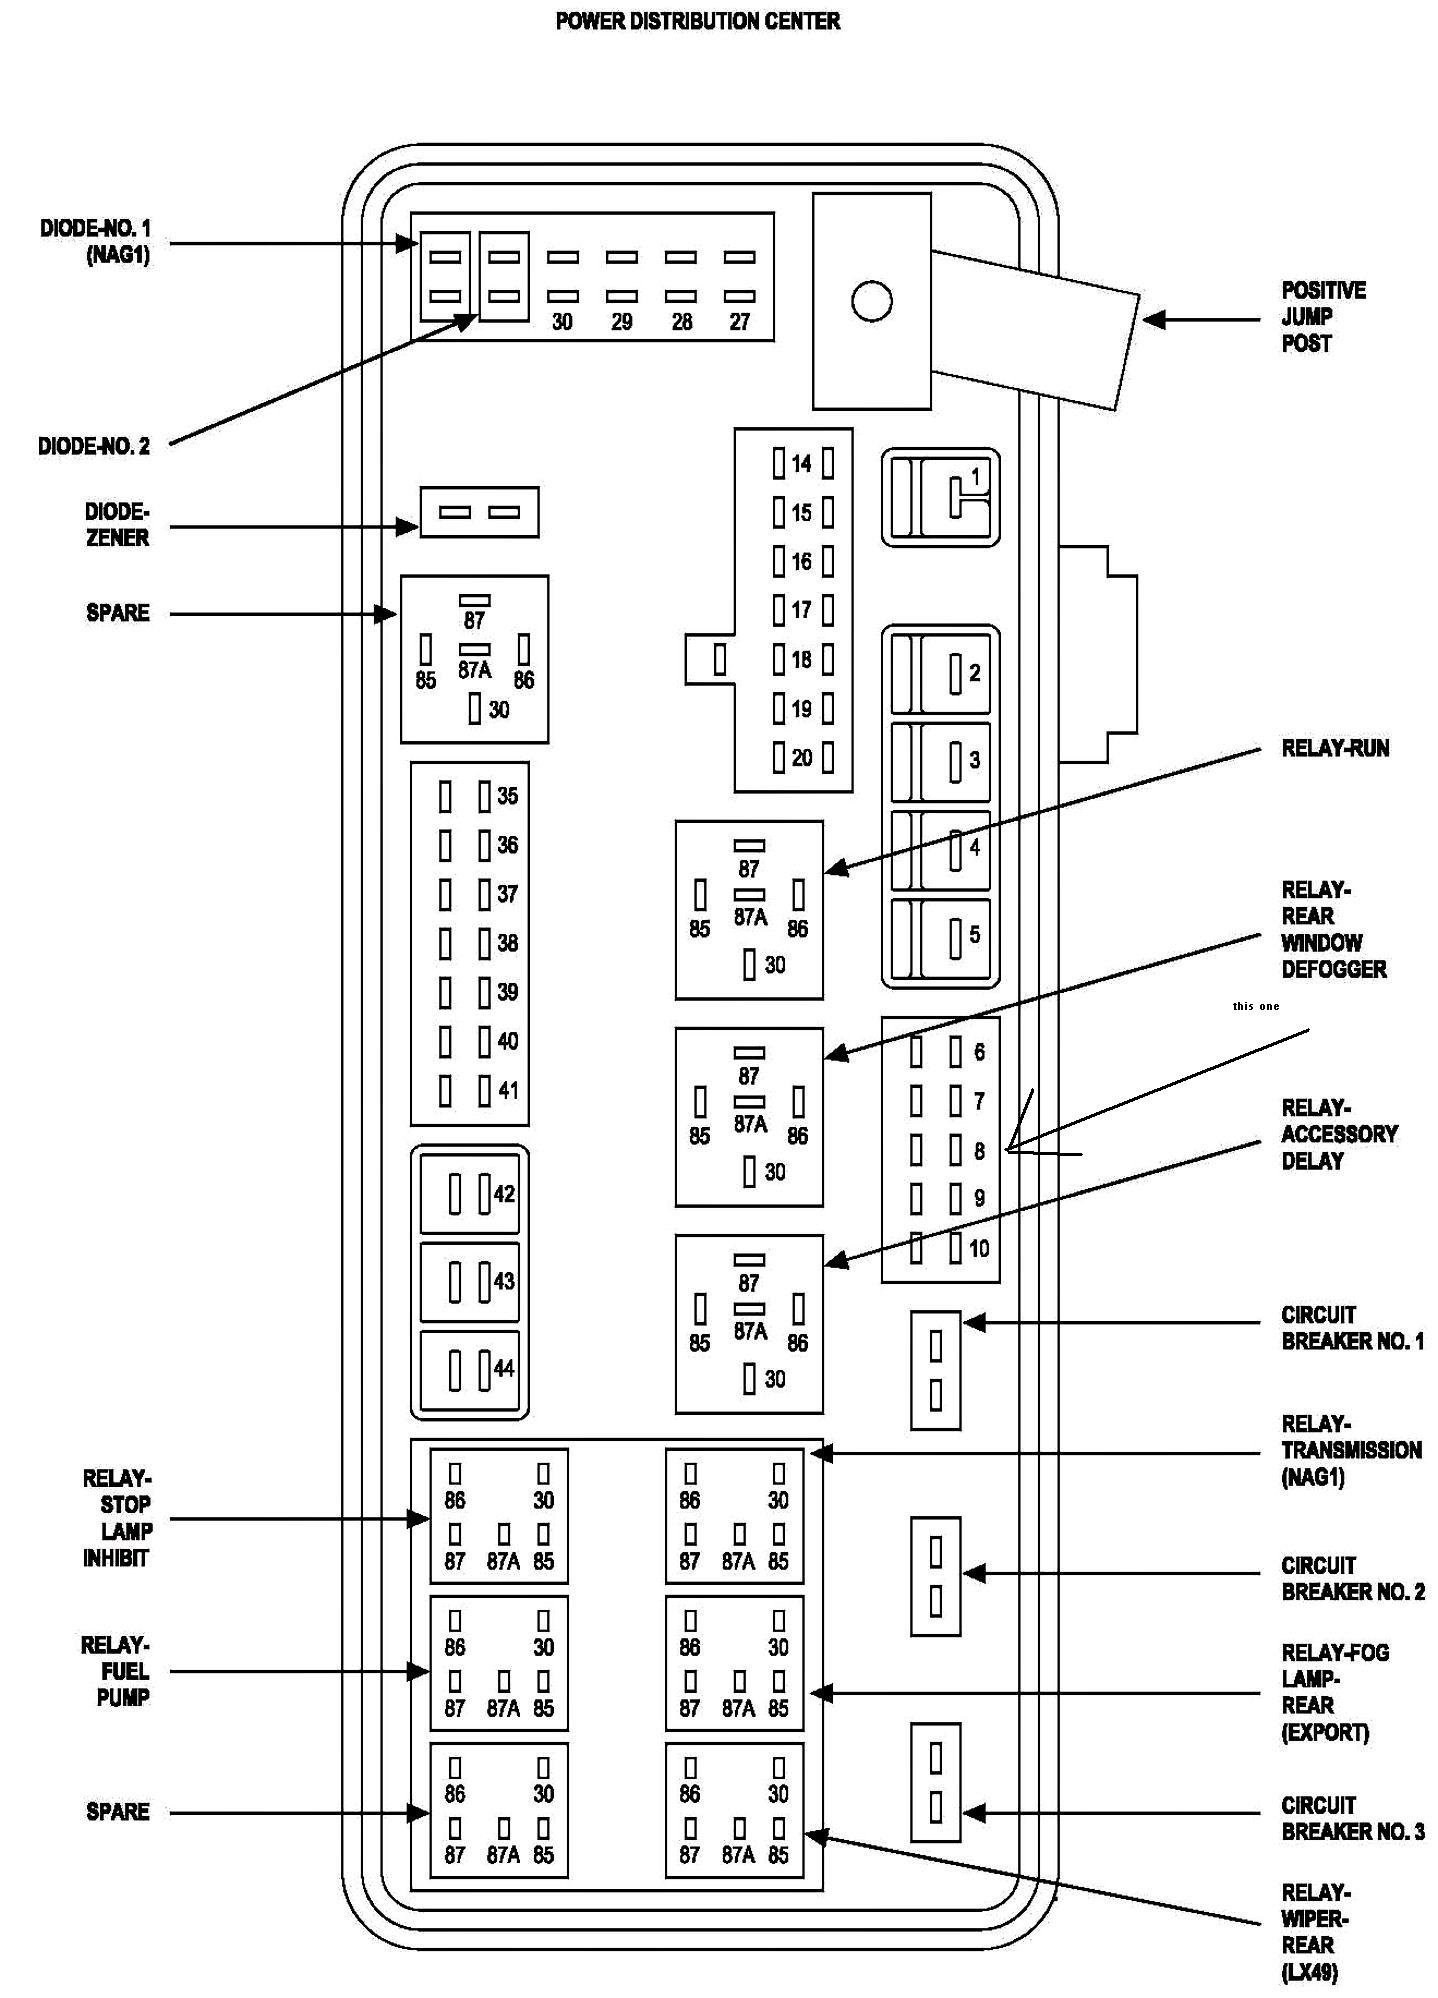 2006 ram 1500 fuse box wiring diagrams mon2006 dodge ram fuse box wiring diagram schematics 2006 dodge ram 1500 5 7 hemi fuse box diagram 2006 ram 1500 fuse box